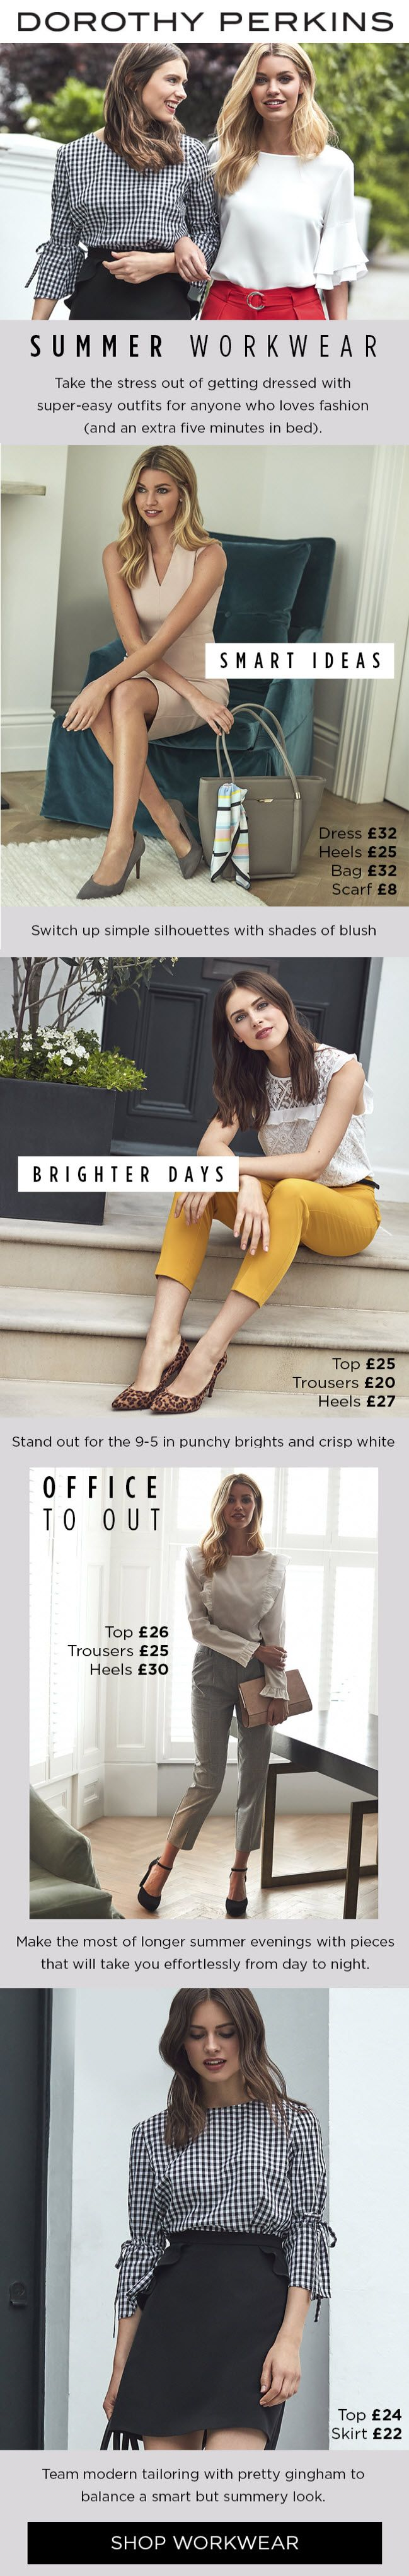 Wondering what to wear to work when it's hot? Let us take the stress out of …